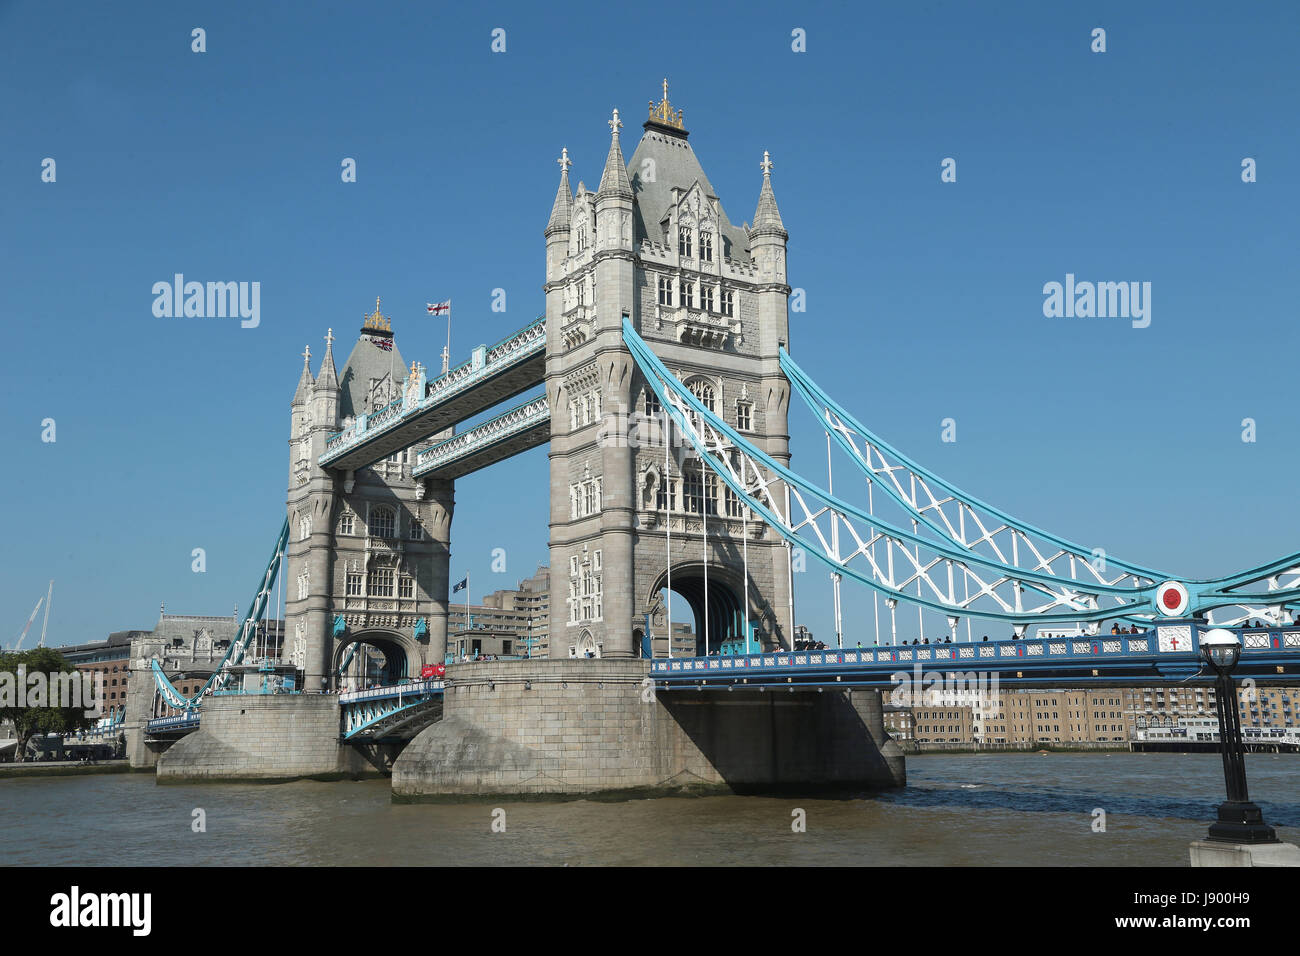 the iconic tower bridge in london one of the most famous buildings